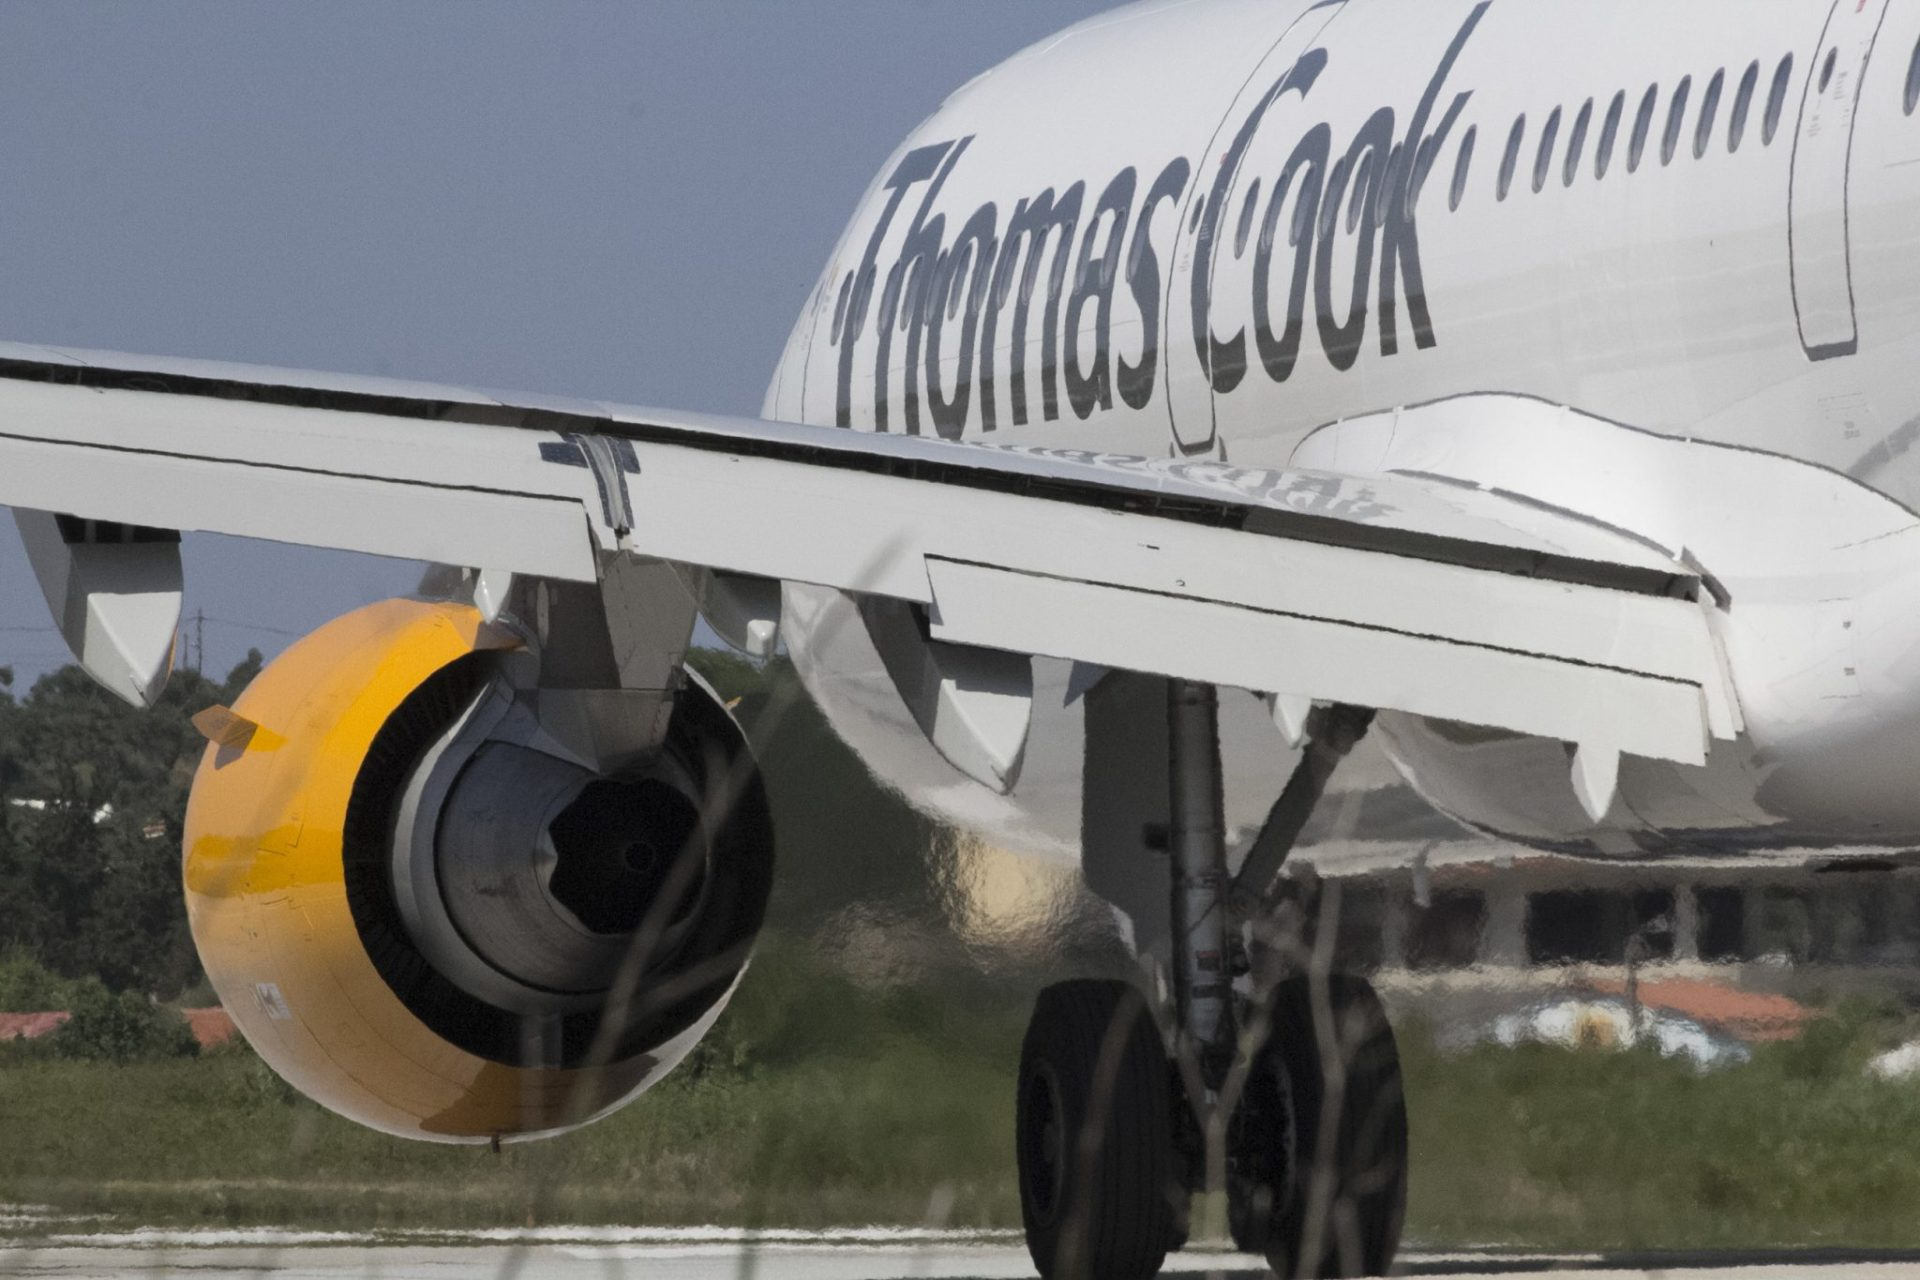 Thomas Cook Group to be Rescued by Fosun Group